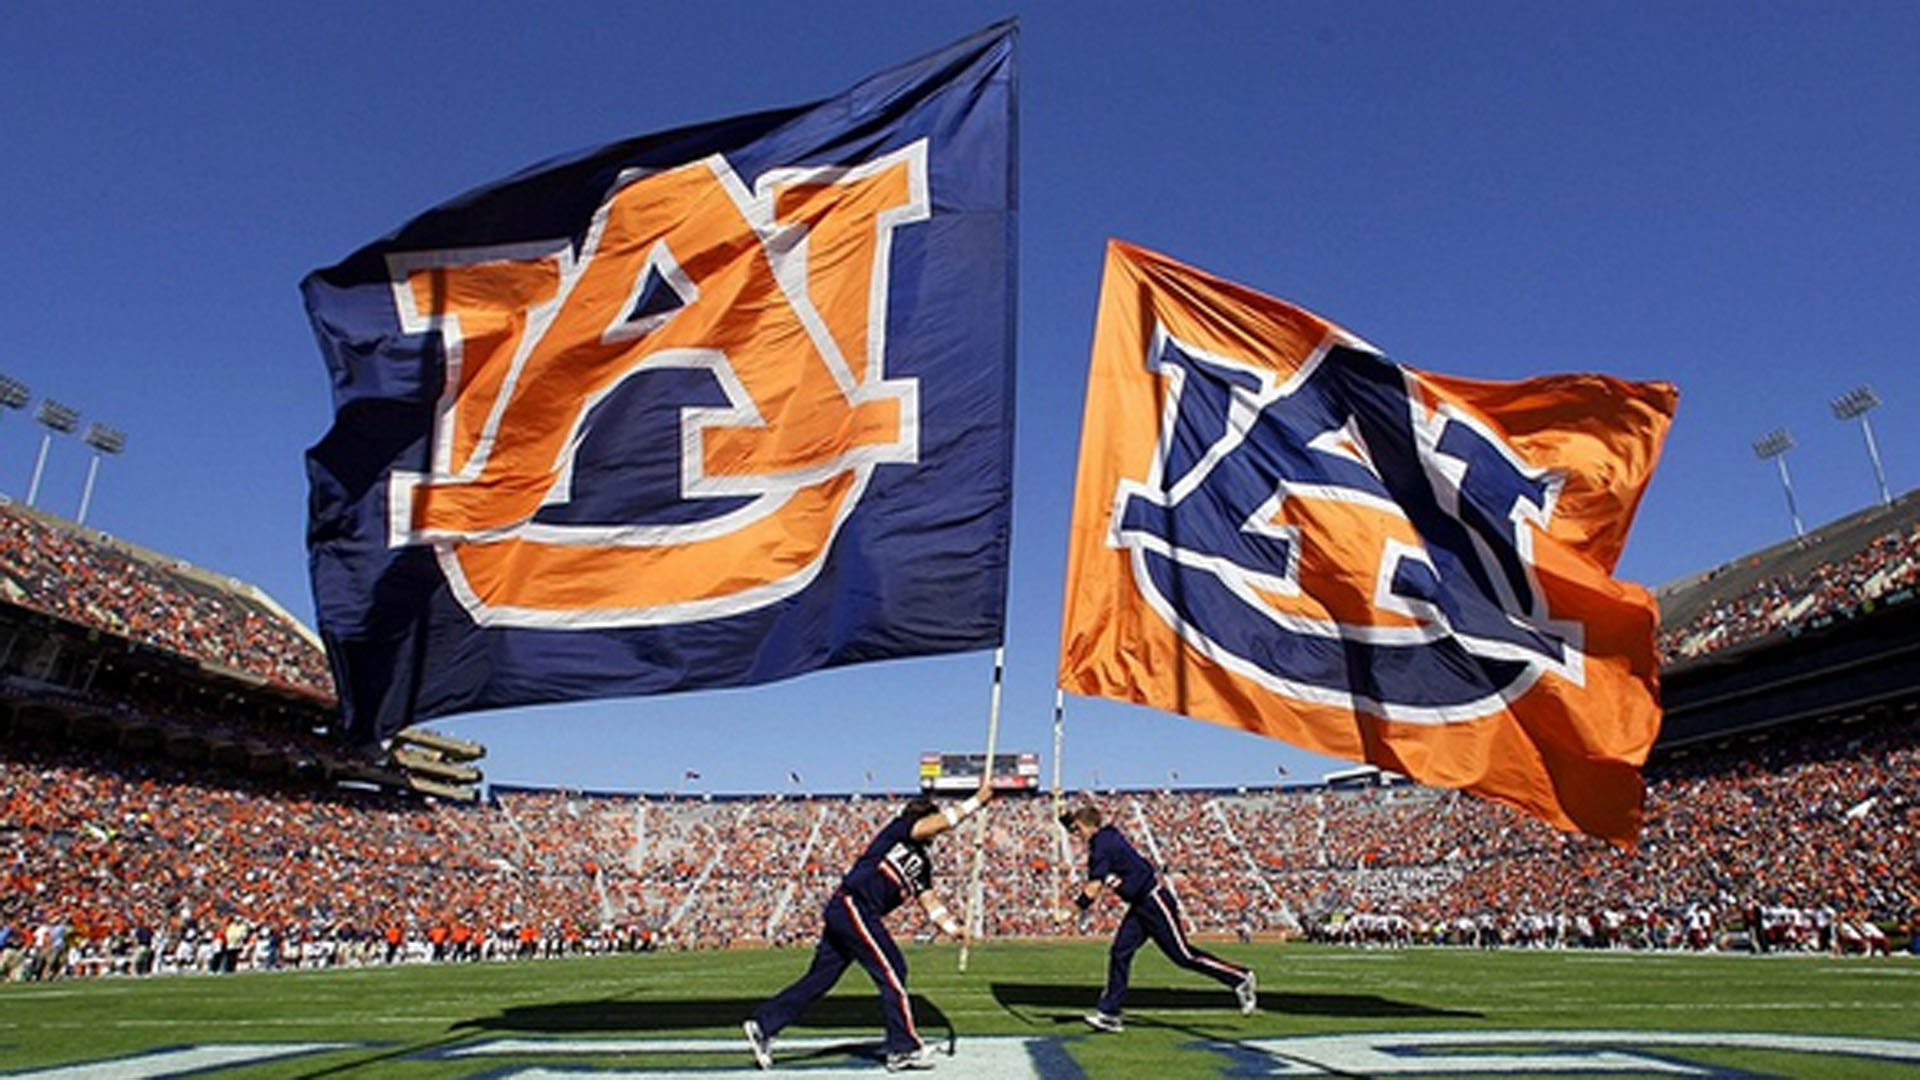 auburn-football-021715-getty-ftr_swn6yabwsq4516de4tt2yquck